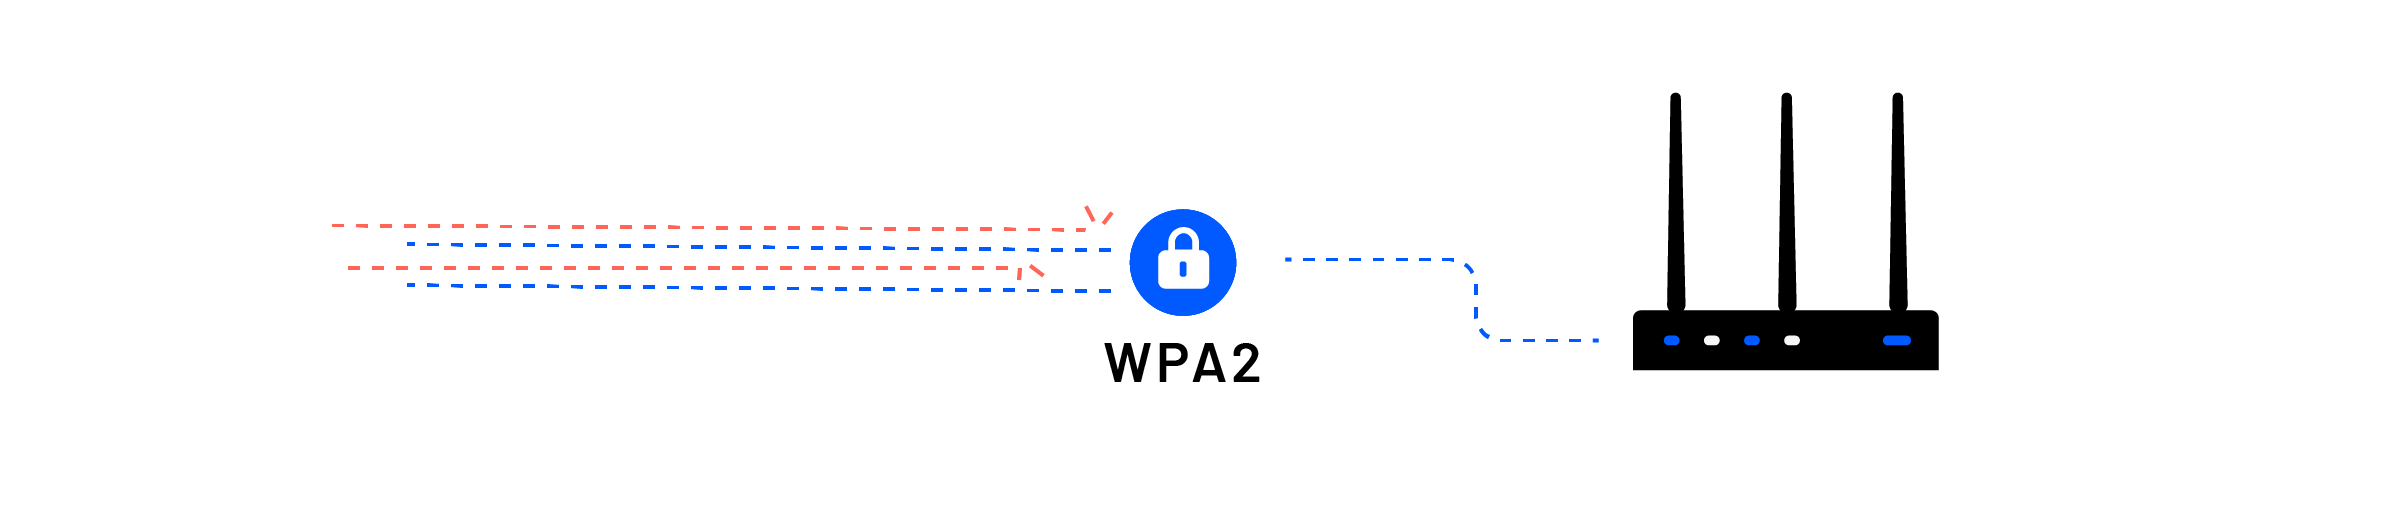 WPA2 creating network security by protecting a router